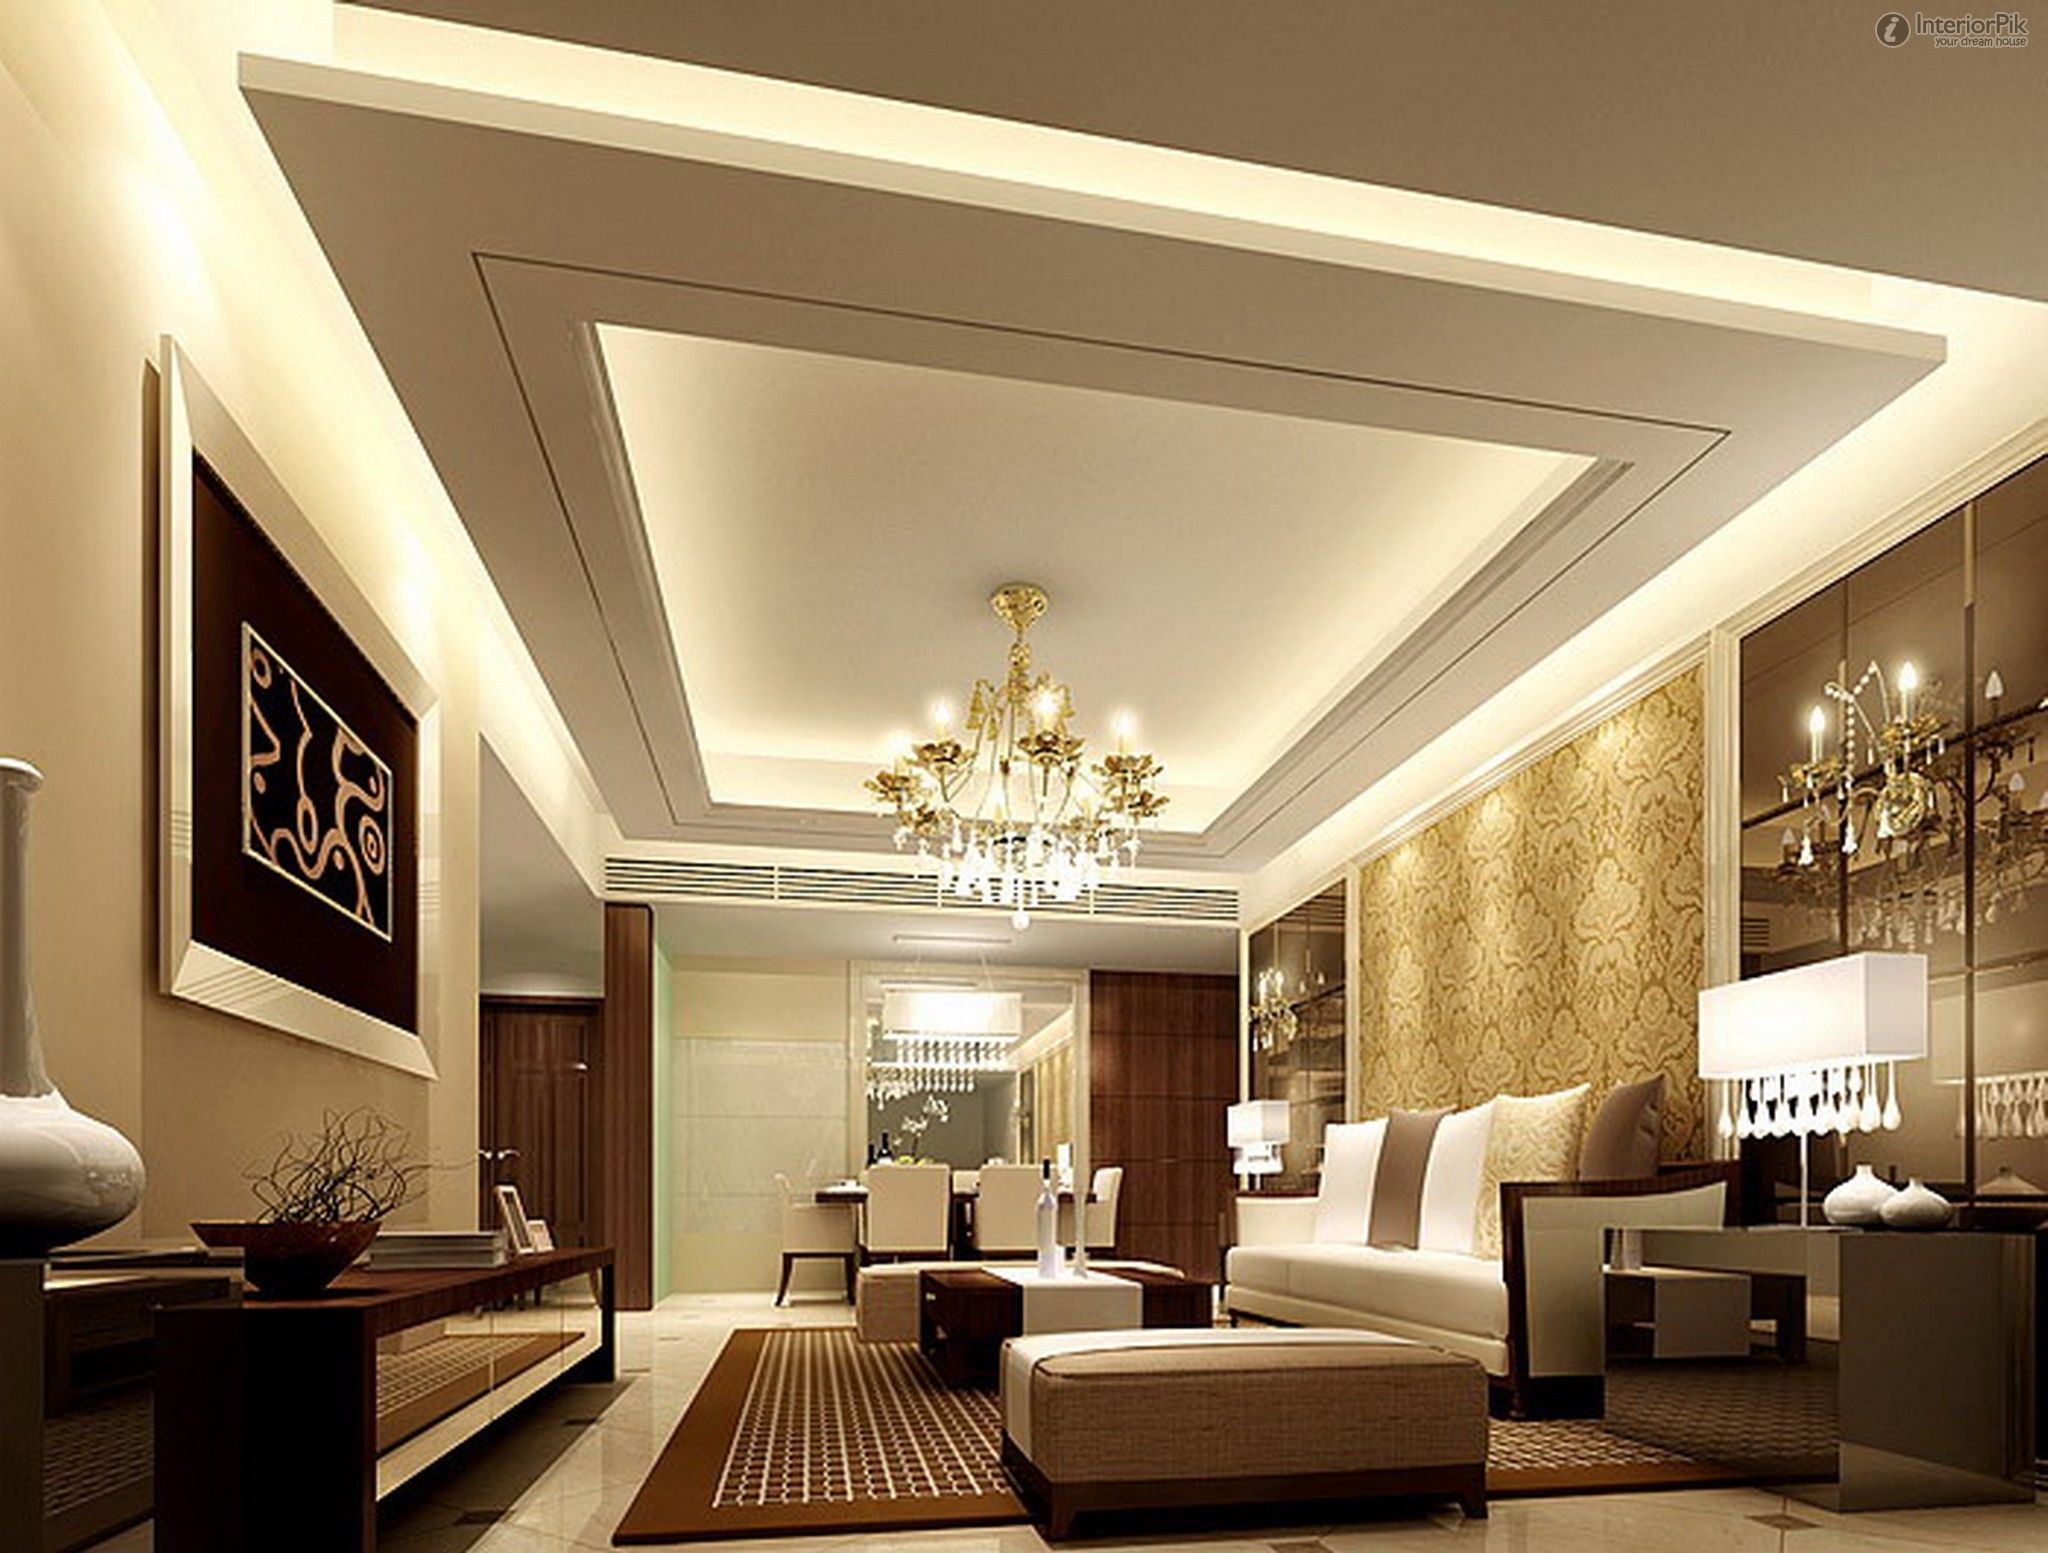 Ceiling Ideas For Living Room creative pop false ceiling designs with wooden tray Find This Pin And More On Modern Living Room Inspiration Interesting Info About Ceiling Design